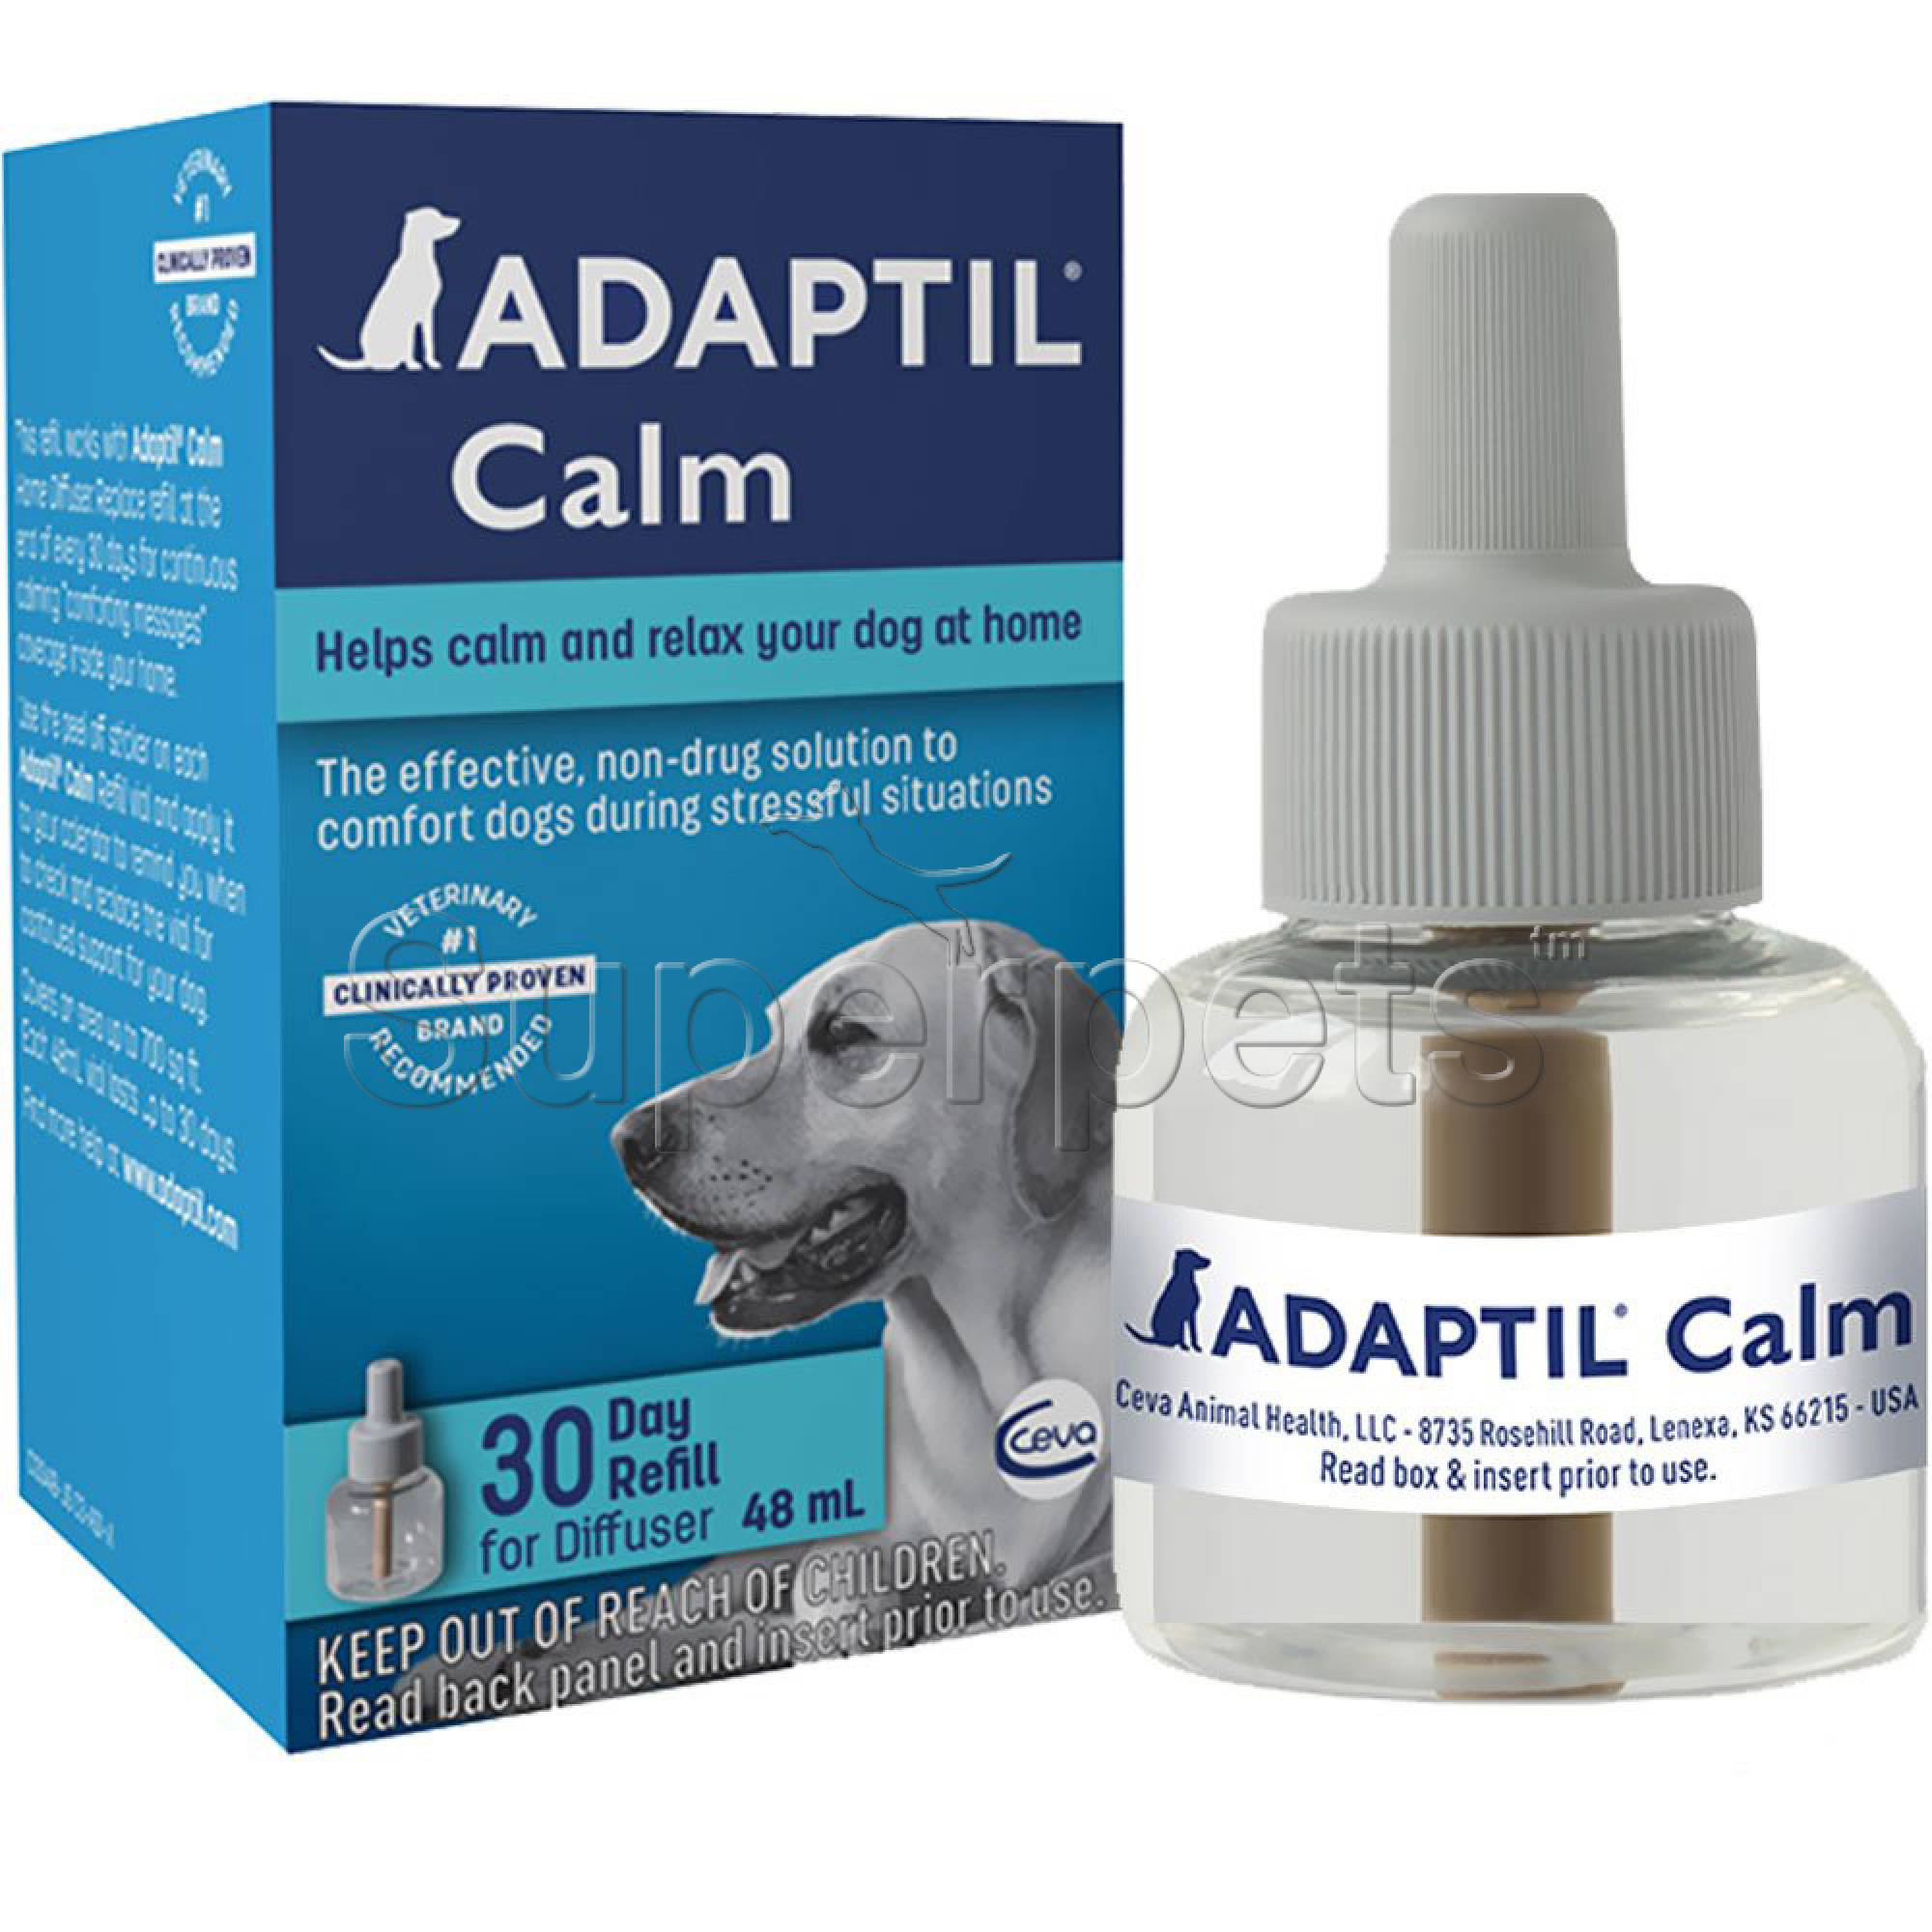 Adaptil Calm Home 30 Day Refill Vial for Diffuser 48ml